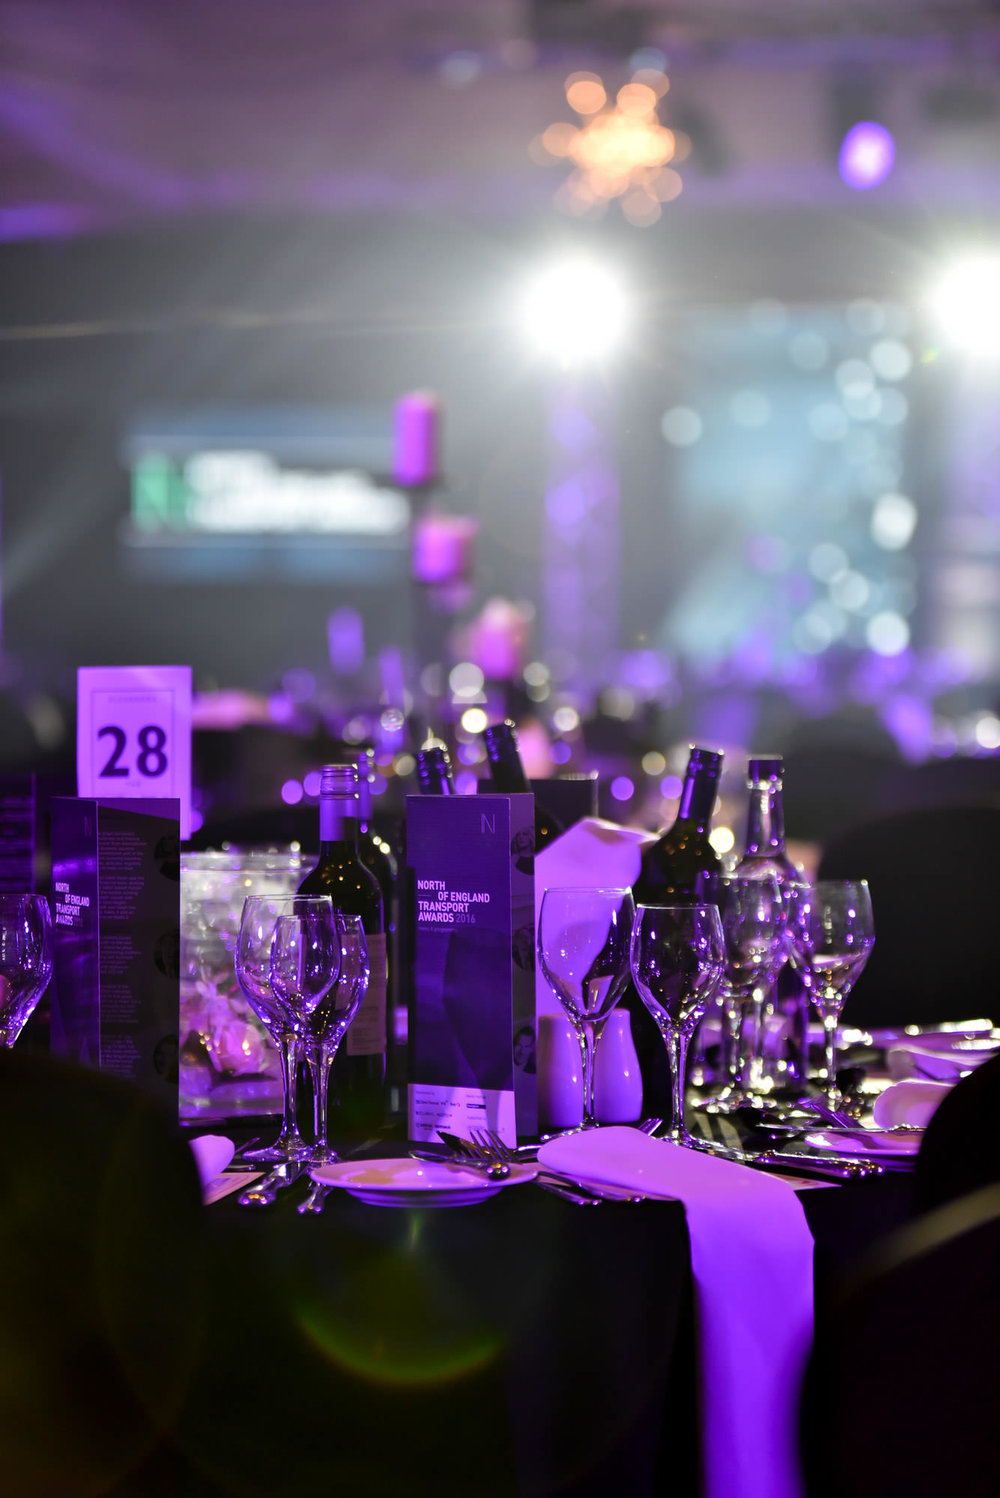 NorthOfEngland_TransportAwards_22.jpg